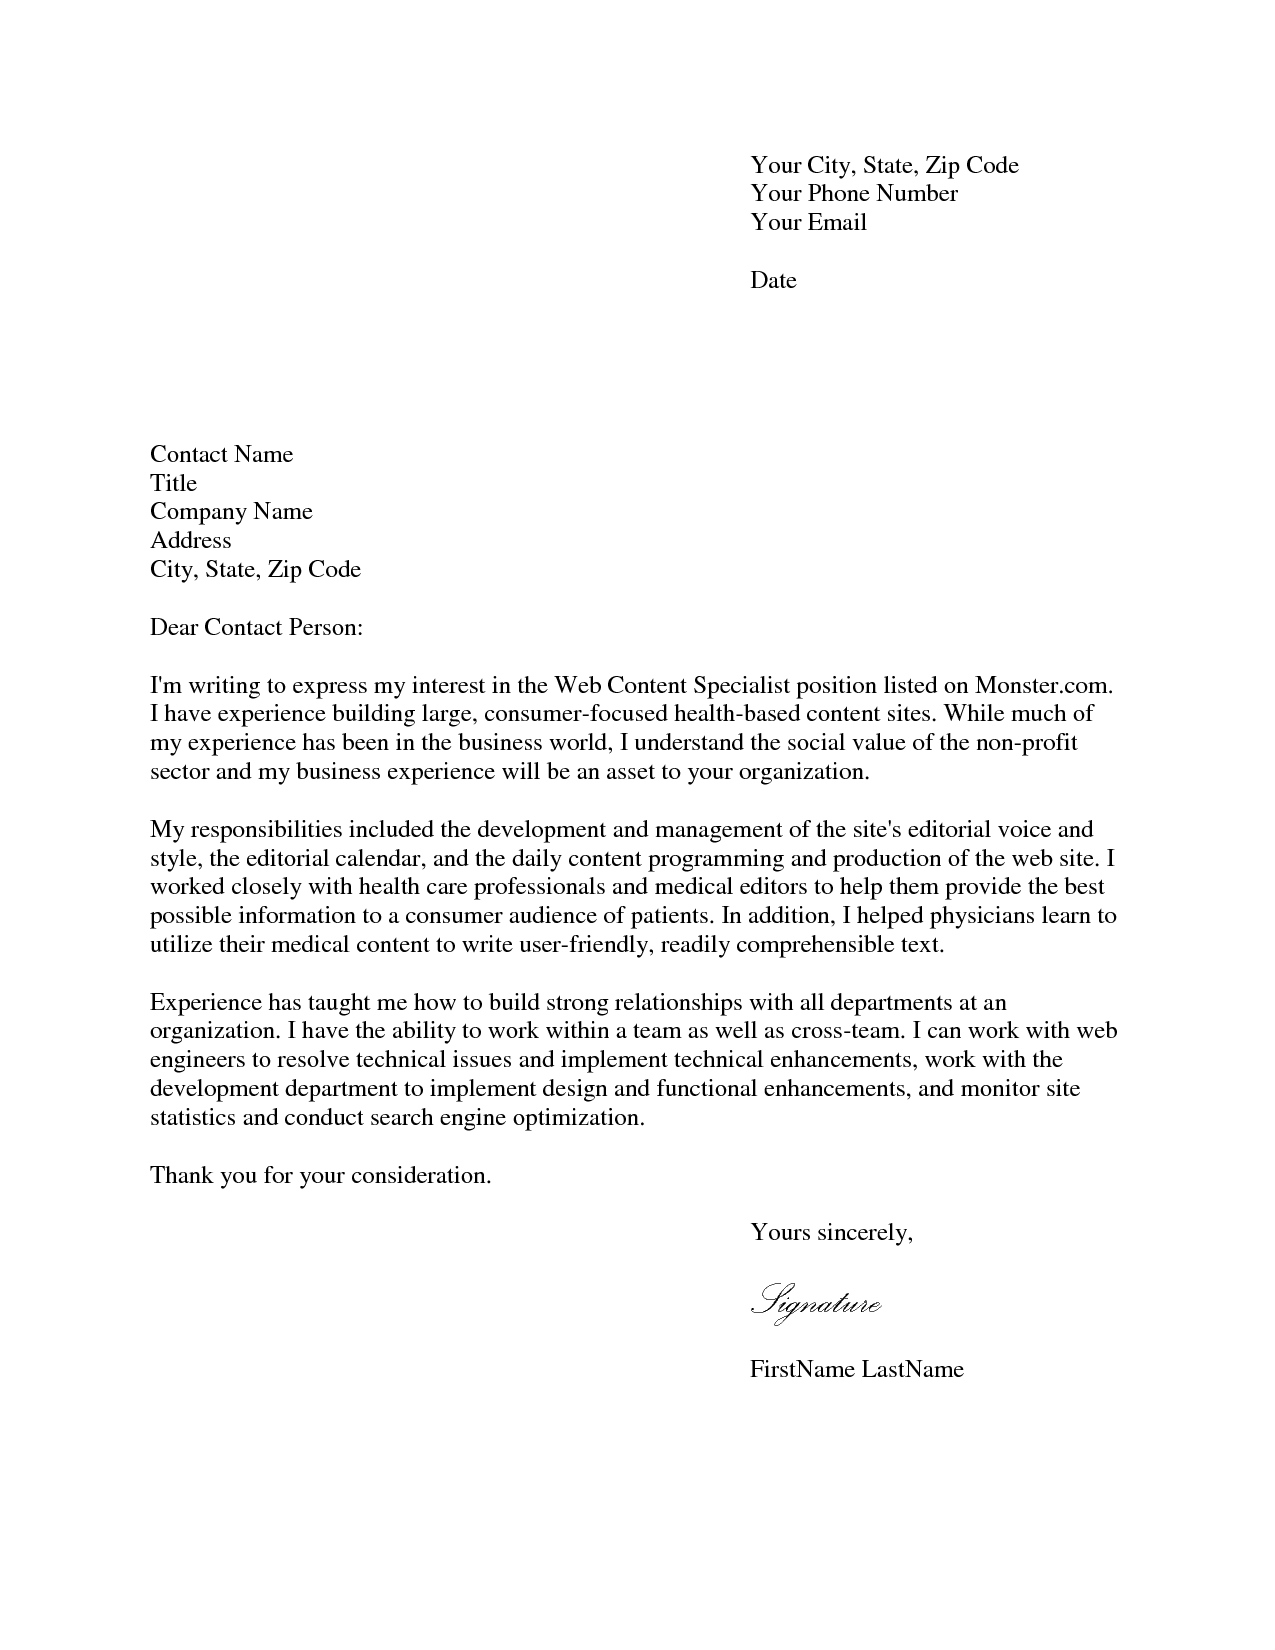 Job shadow essay job shadowing a college teacher by madison thank you letter job shadow resume pdf thank you letter job shadow job shadowing college of expocarfo Choice Image